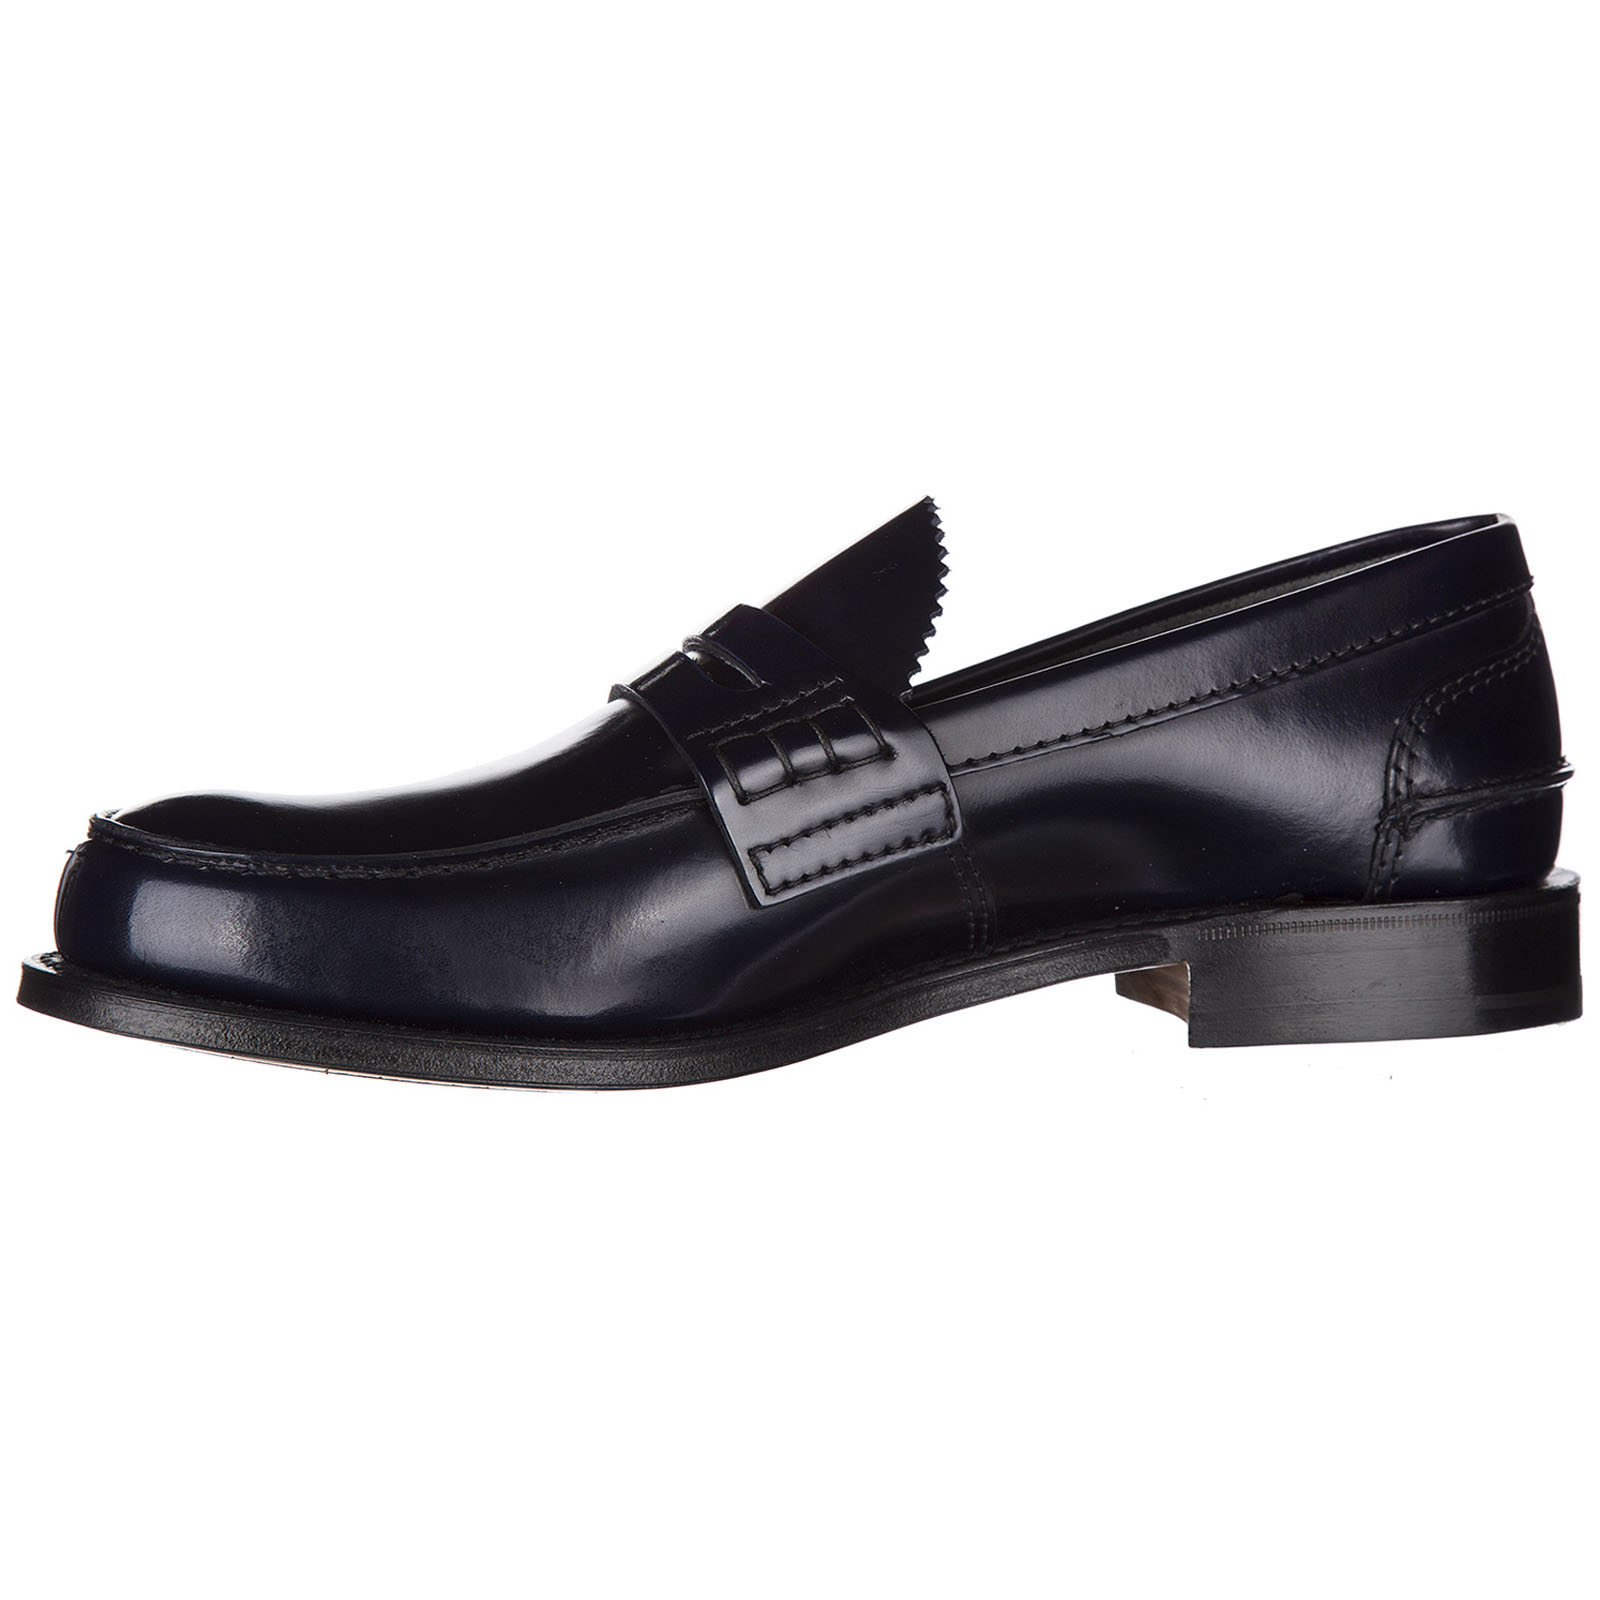 Herren leder mokassins slipper  tunbridge